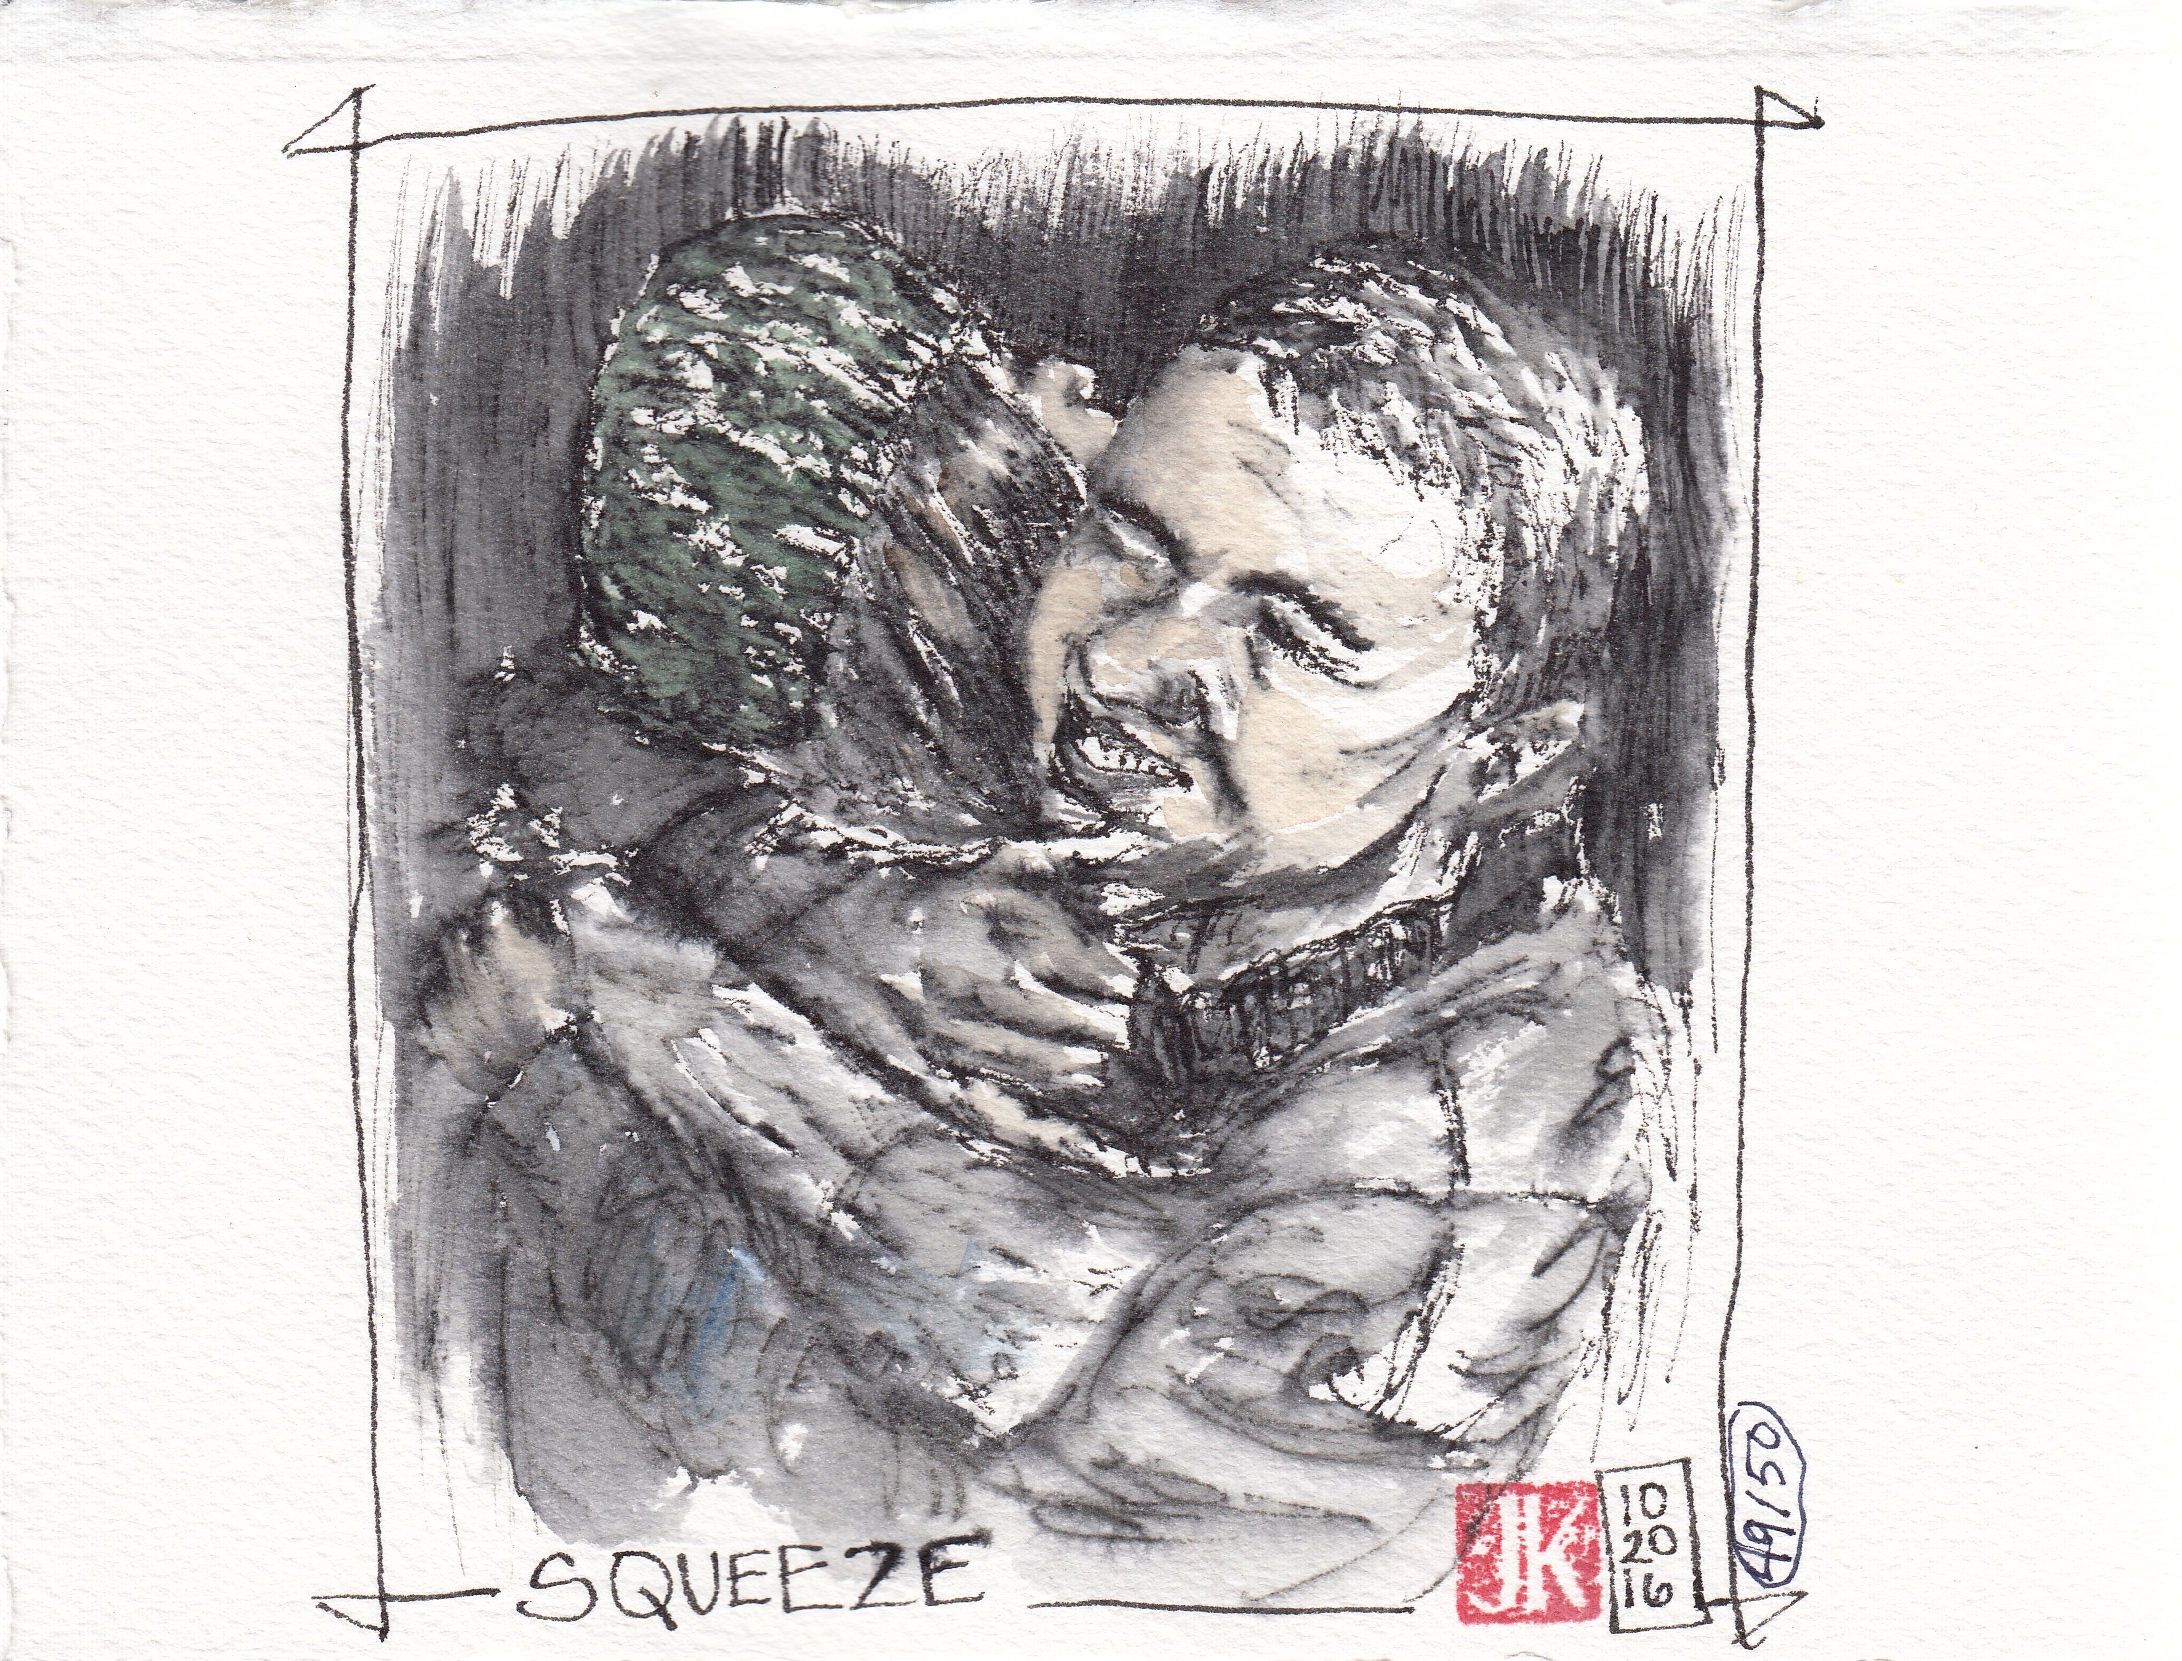 Day 20 - Squeeze